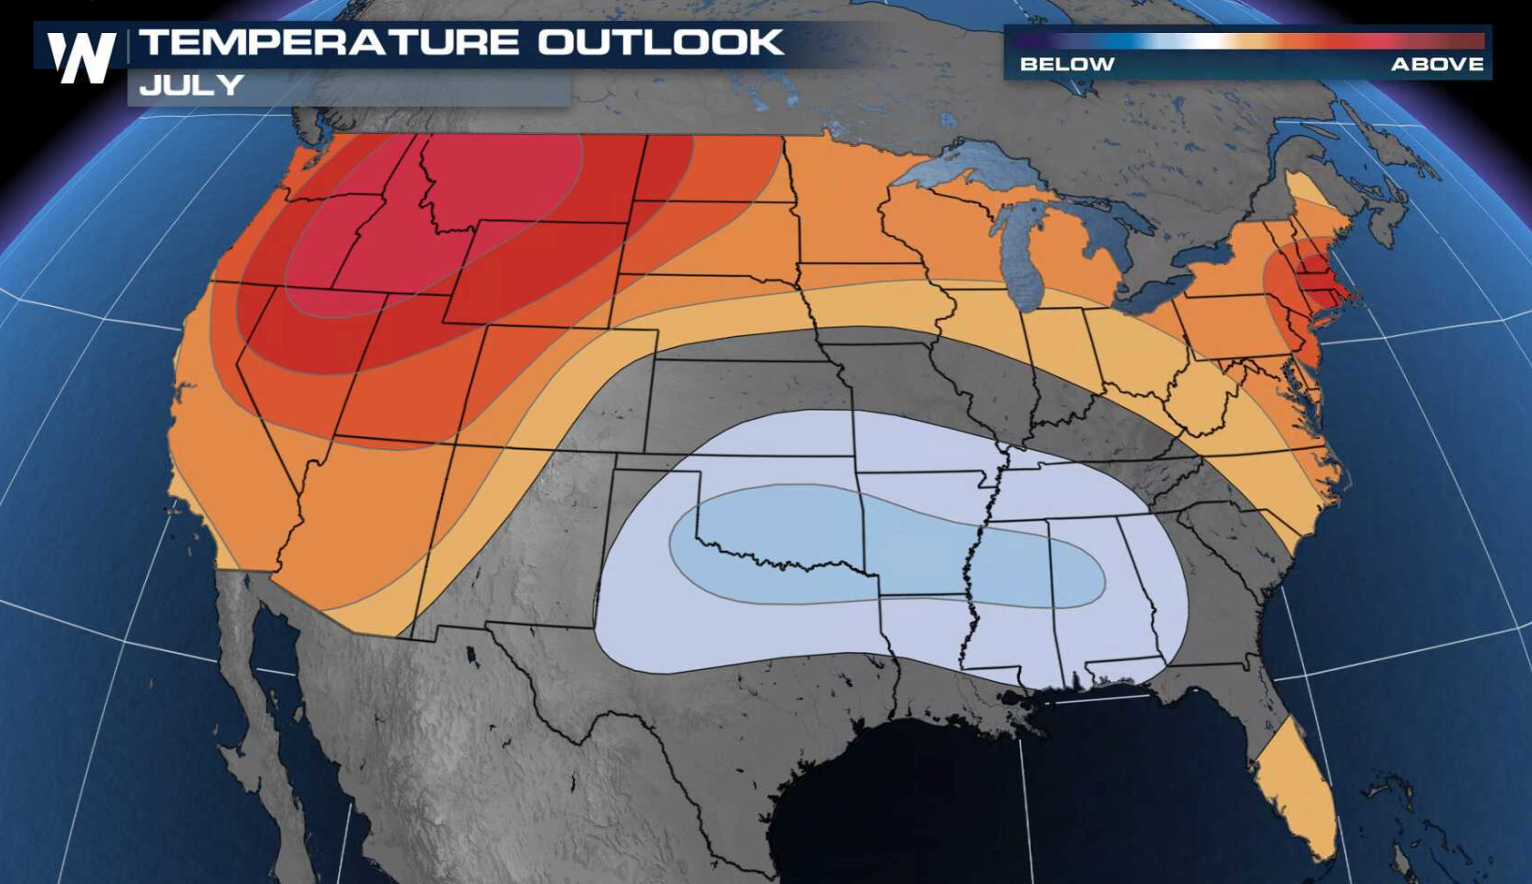 Updated July Outlook: hotter than average for much of the West, North, and East